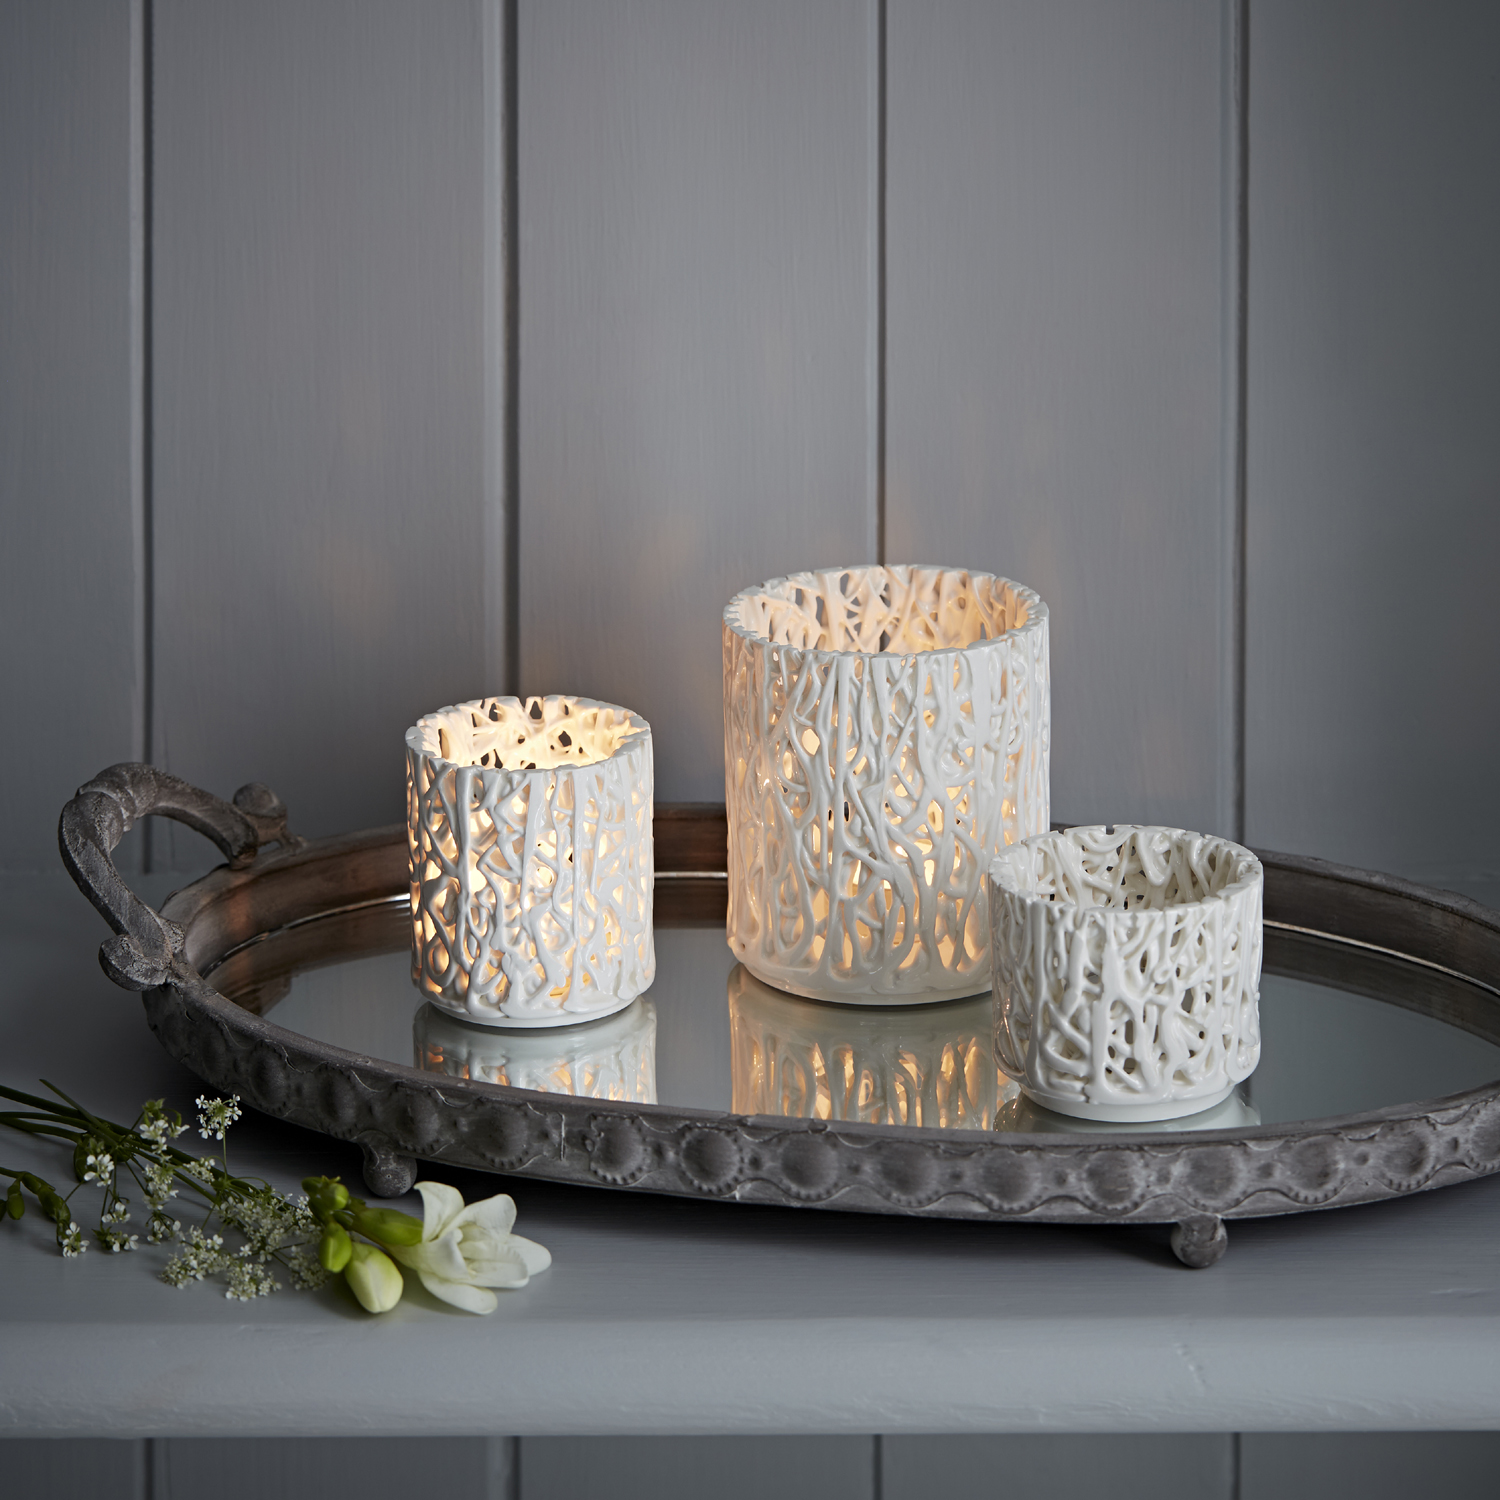 Tangled Web Tea Light Holders  ceramic